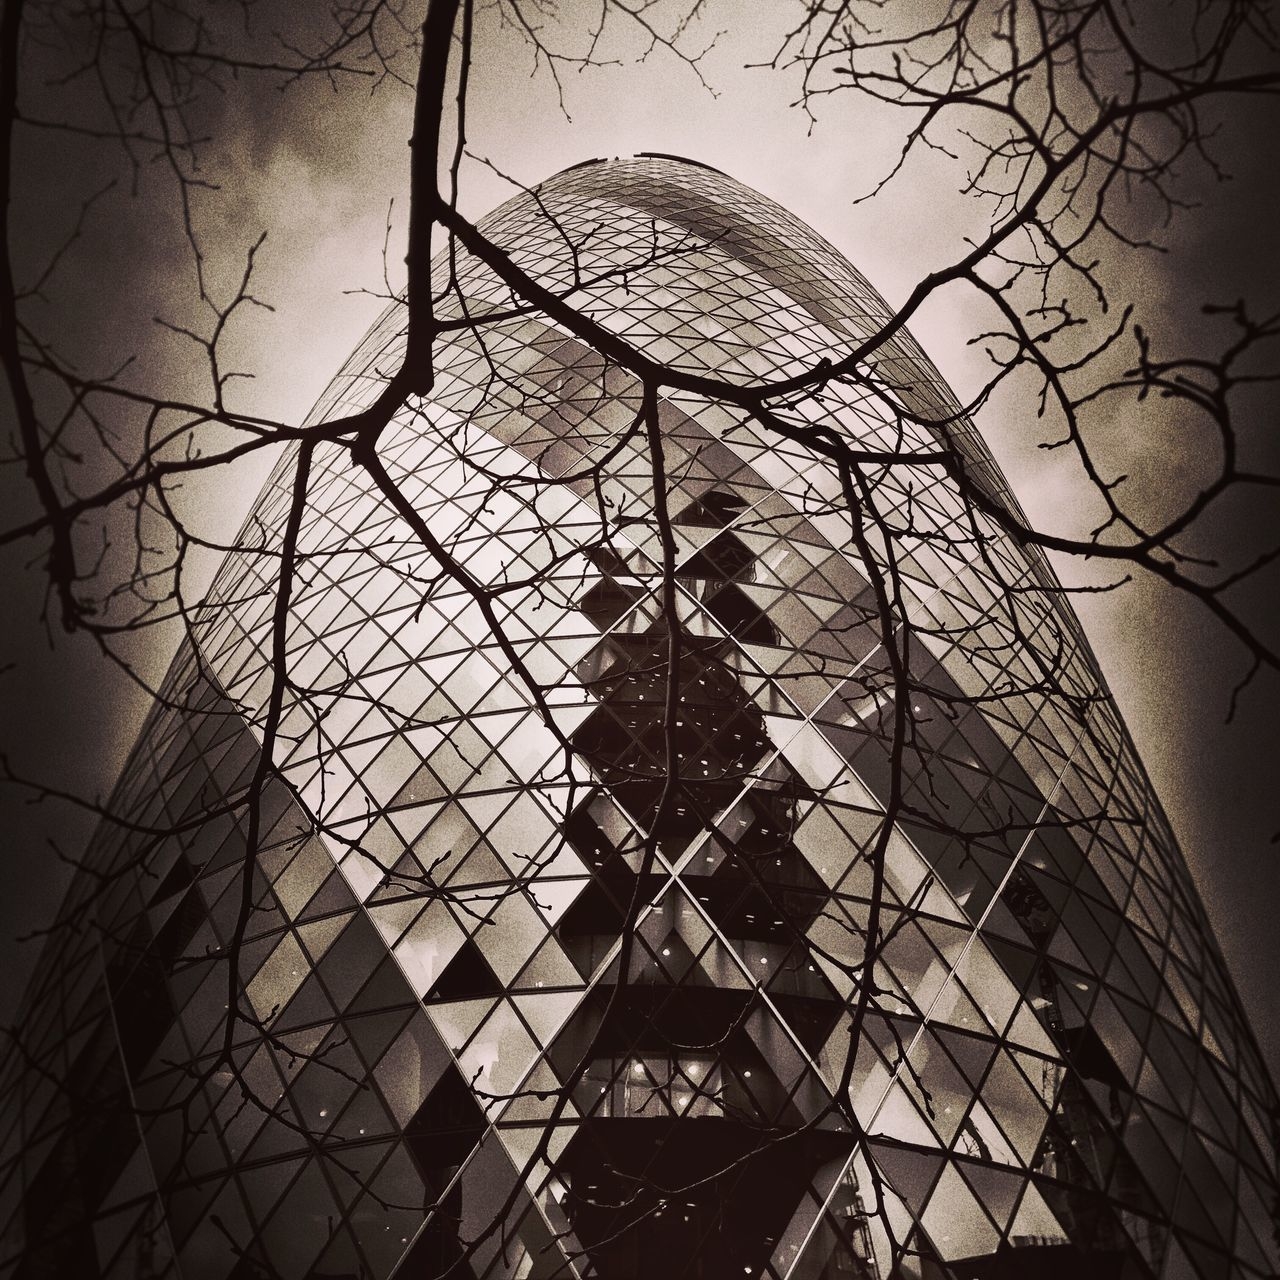 No People Bare Tree Outdoors Sky Tree Day Architecture Buildings Gherkin Gherkin Tower Gherkin Building London Spooky Halloween Blackandwhite Black & White Buildings & Sky